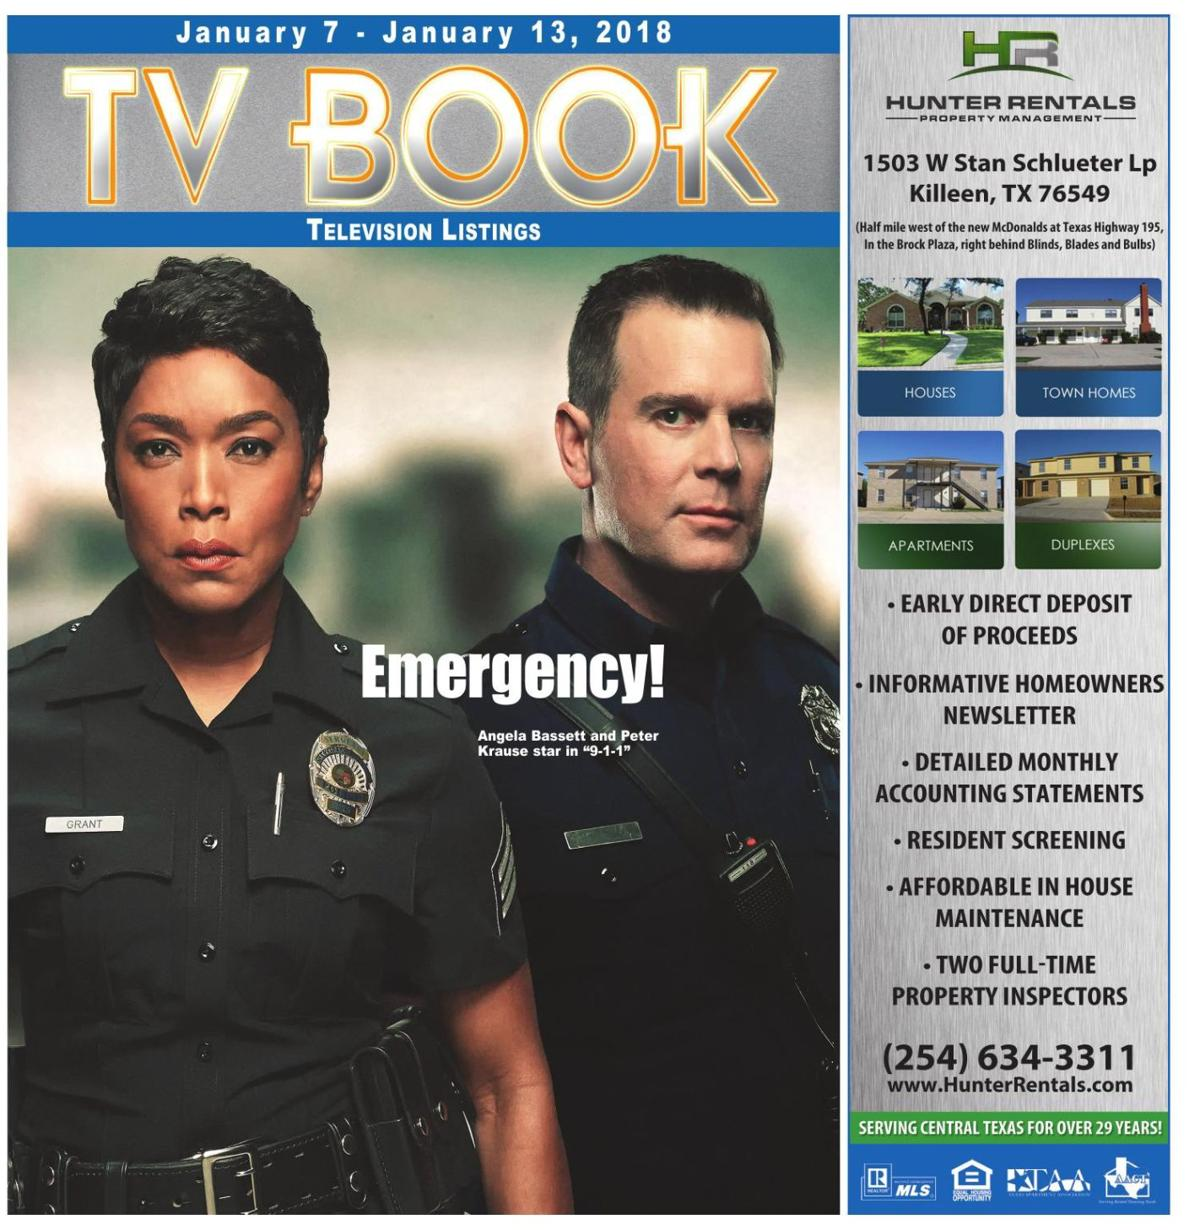 TV Book Jan. 7th - Jan. 13th